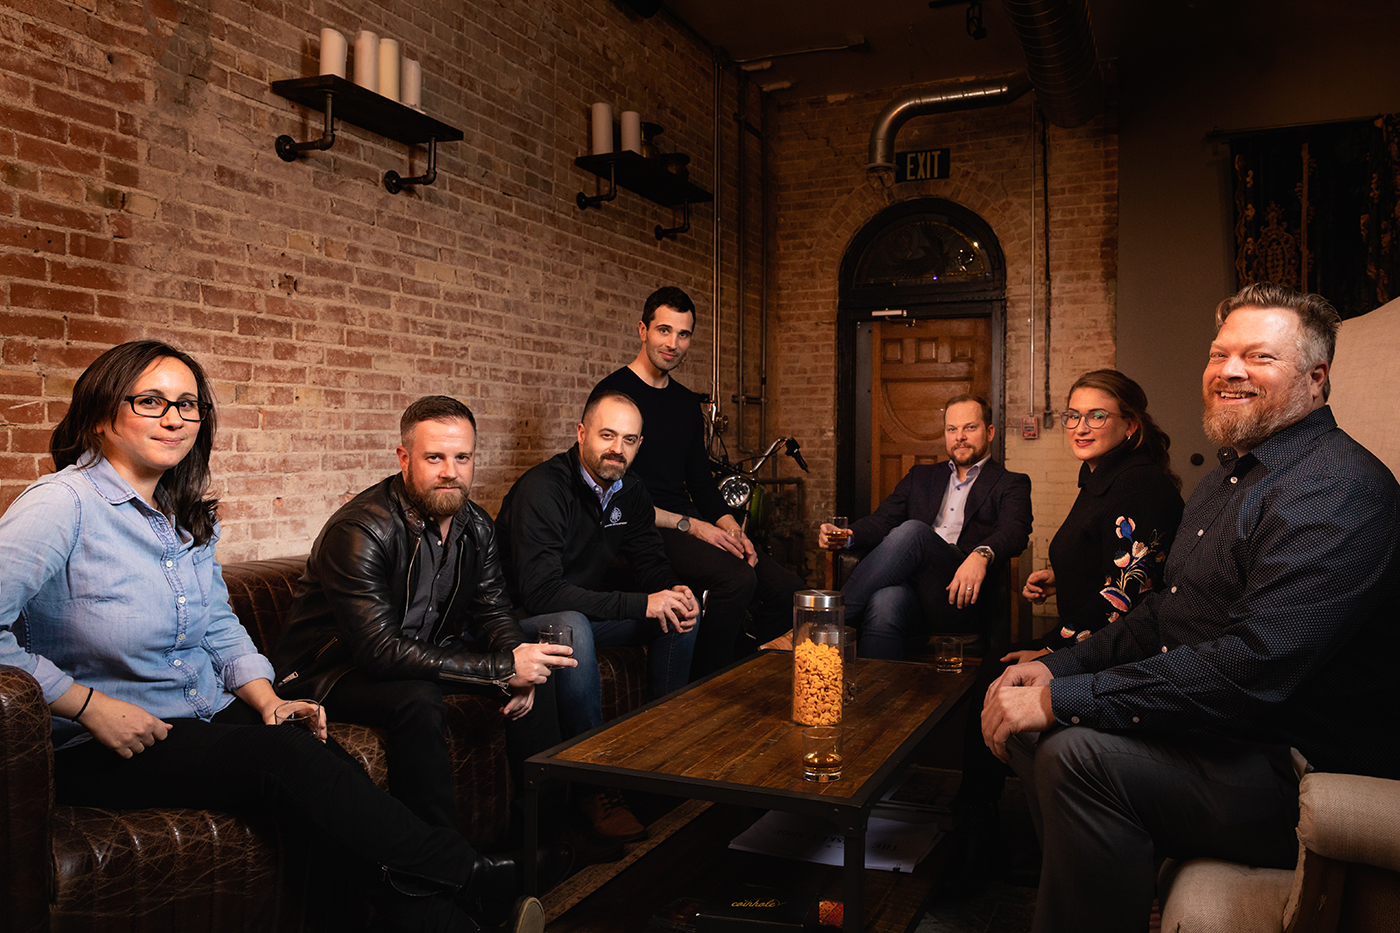 (L–R) Pictured at Black Feather Whiskey, Roberta Reichgelt, Peter Makowski, Ben Kolendar, Jacob Maxwell, Andrew Wittenberg, Simone Butler and Will Wright comprise the Business Development Division of SLC's Department of Economic Development.